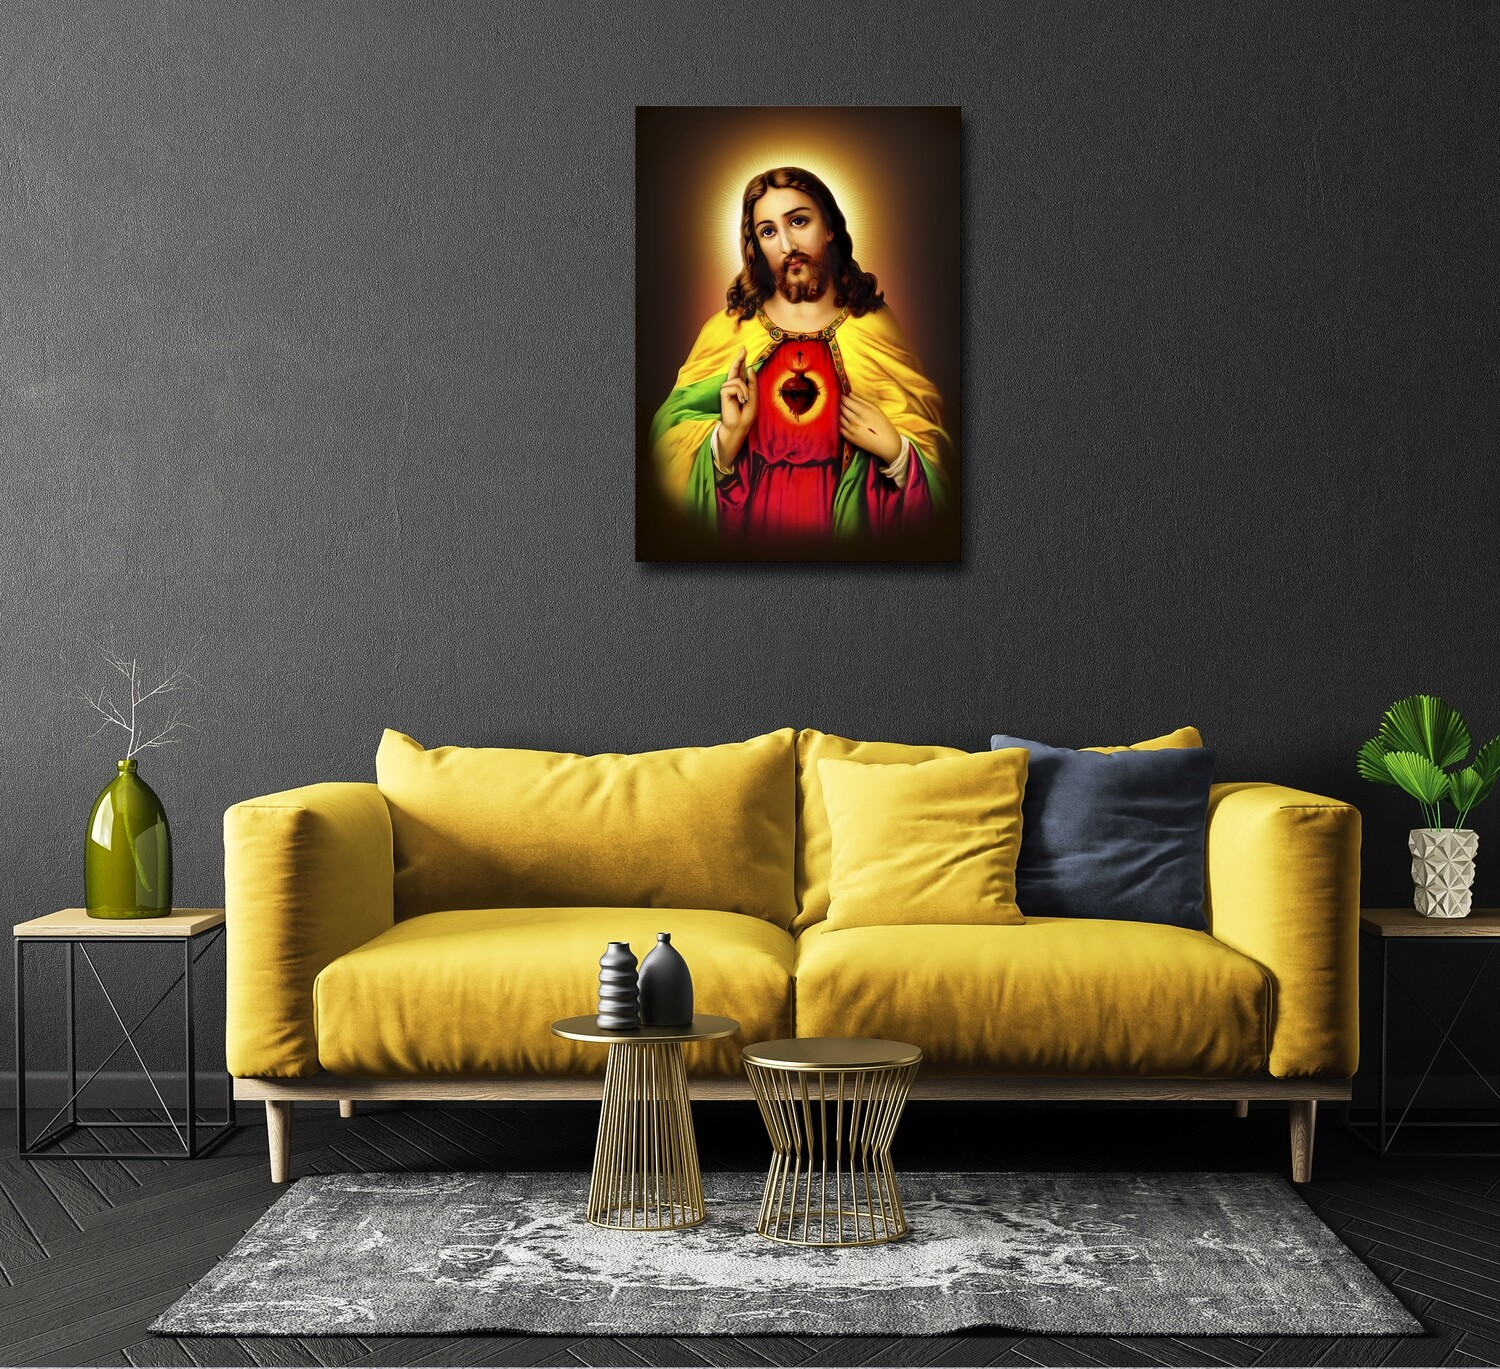 Jesus Sacred Heart Painting -Christian Wallart- The Sacred Heart Picture Printed on Frameless Acrylic Glass - Ready To Hang